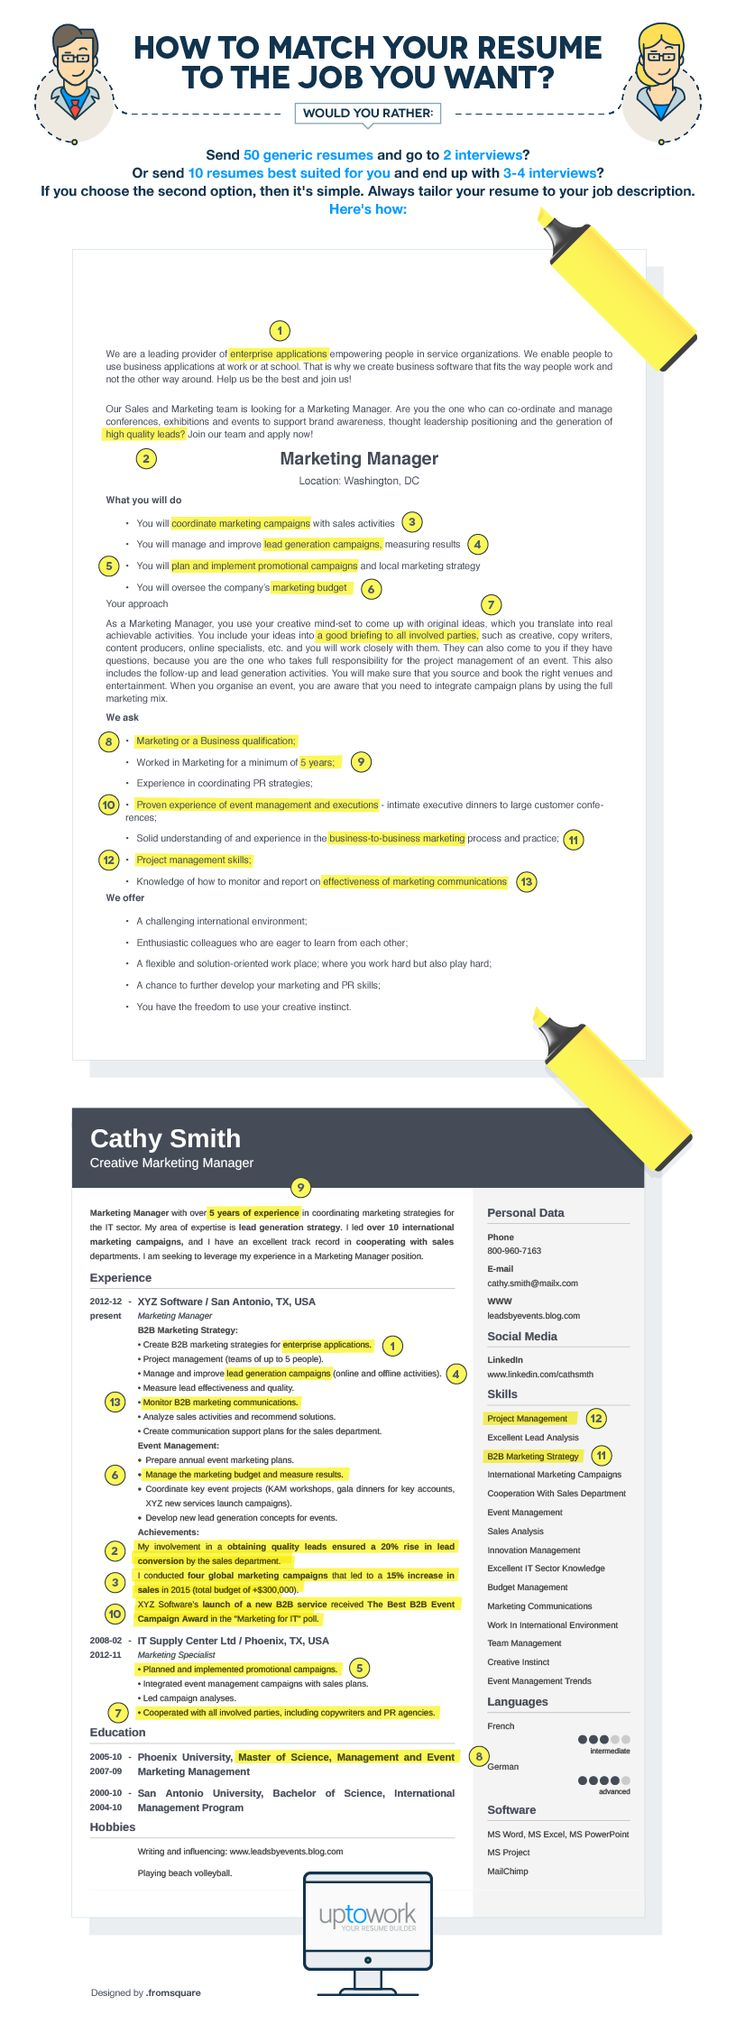 Do you have what it takes? The tips in this infographic will help you tailor your resume to the prospective employer's needs and wants.